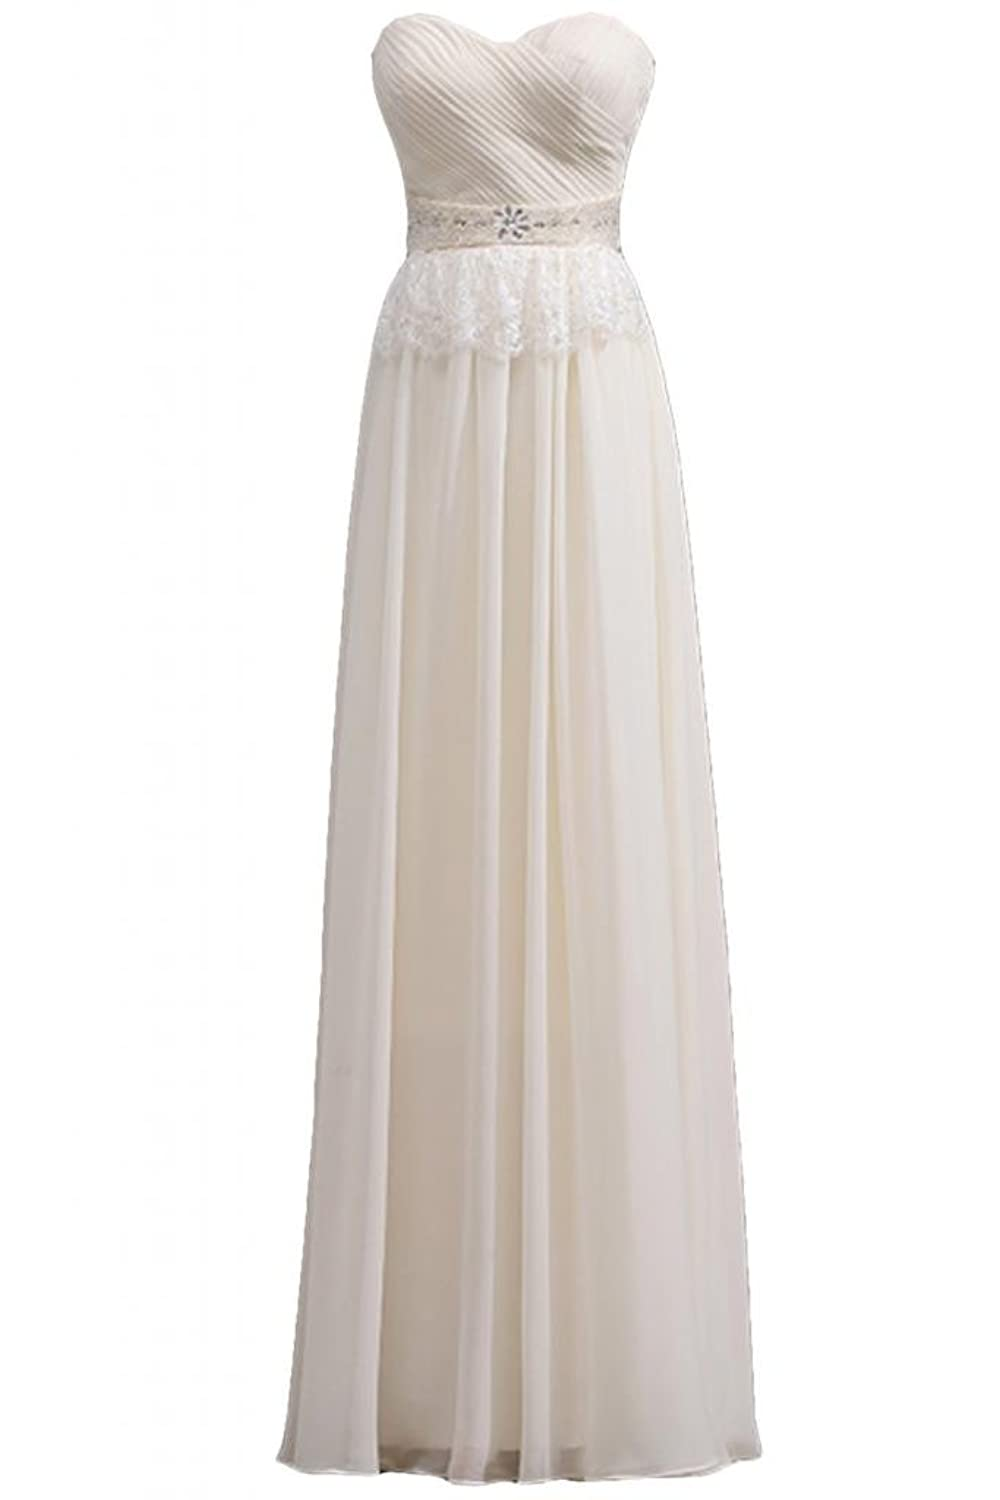 Sunvary Royal Chiffon Long A-line Strapless Sweetheart Evening Prom Dresses